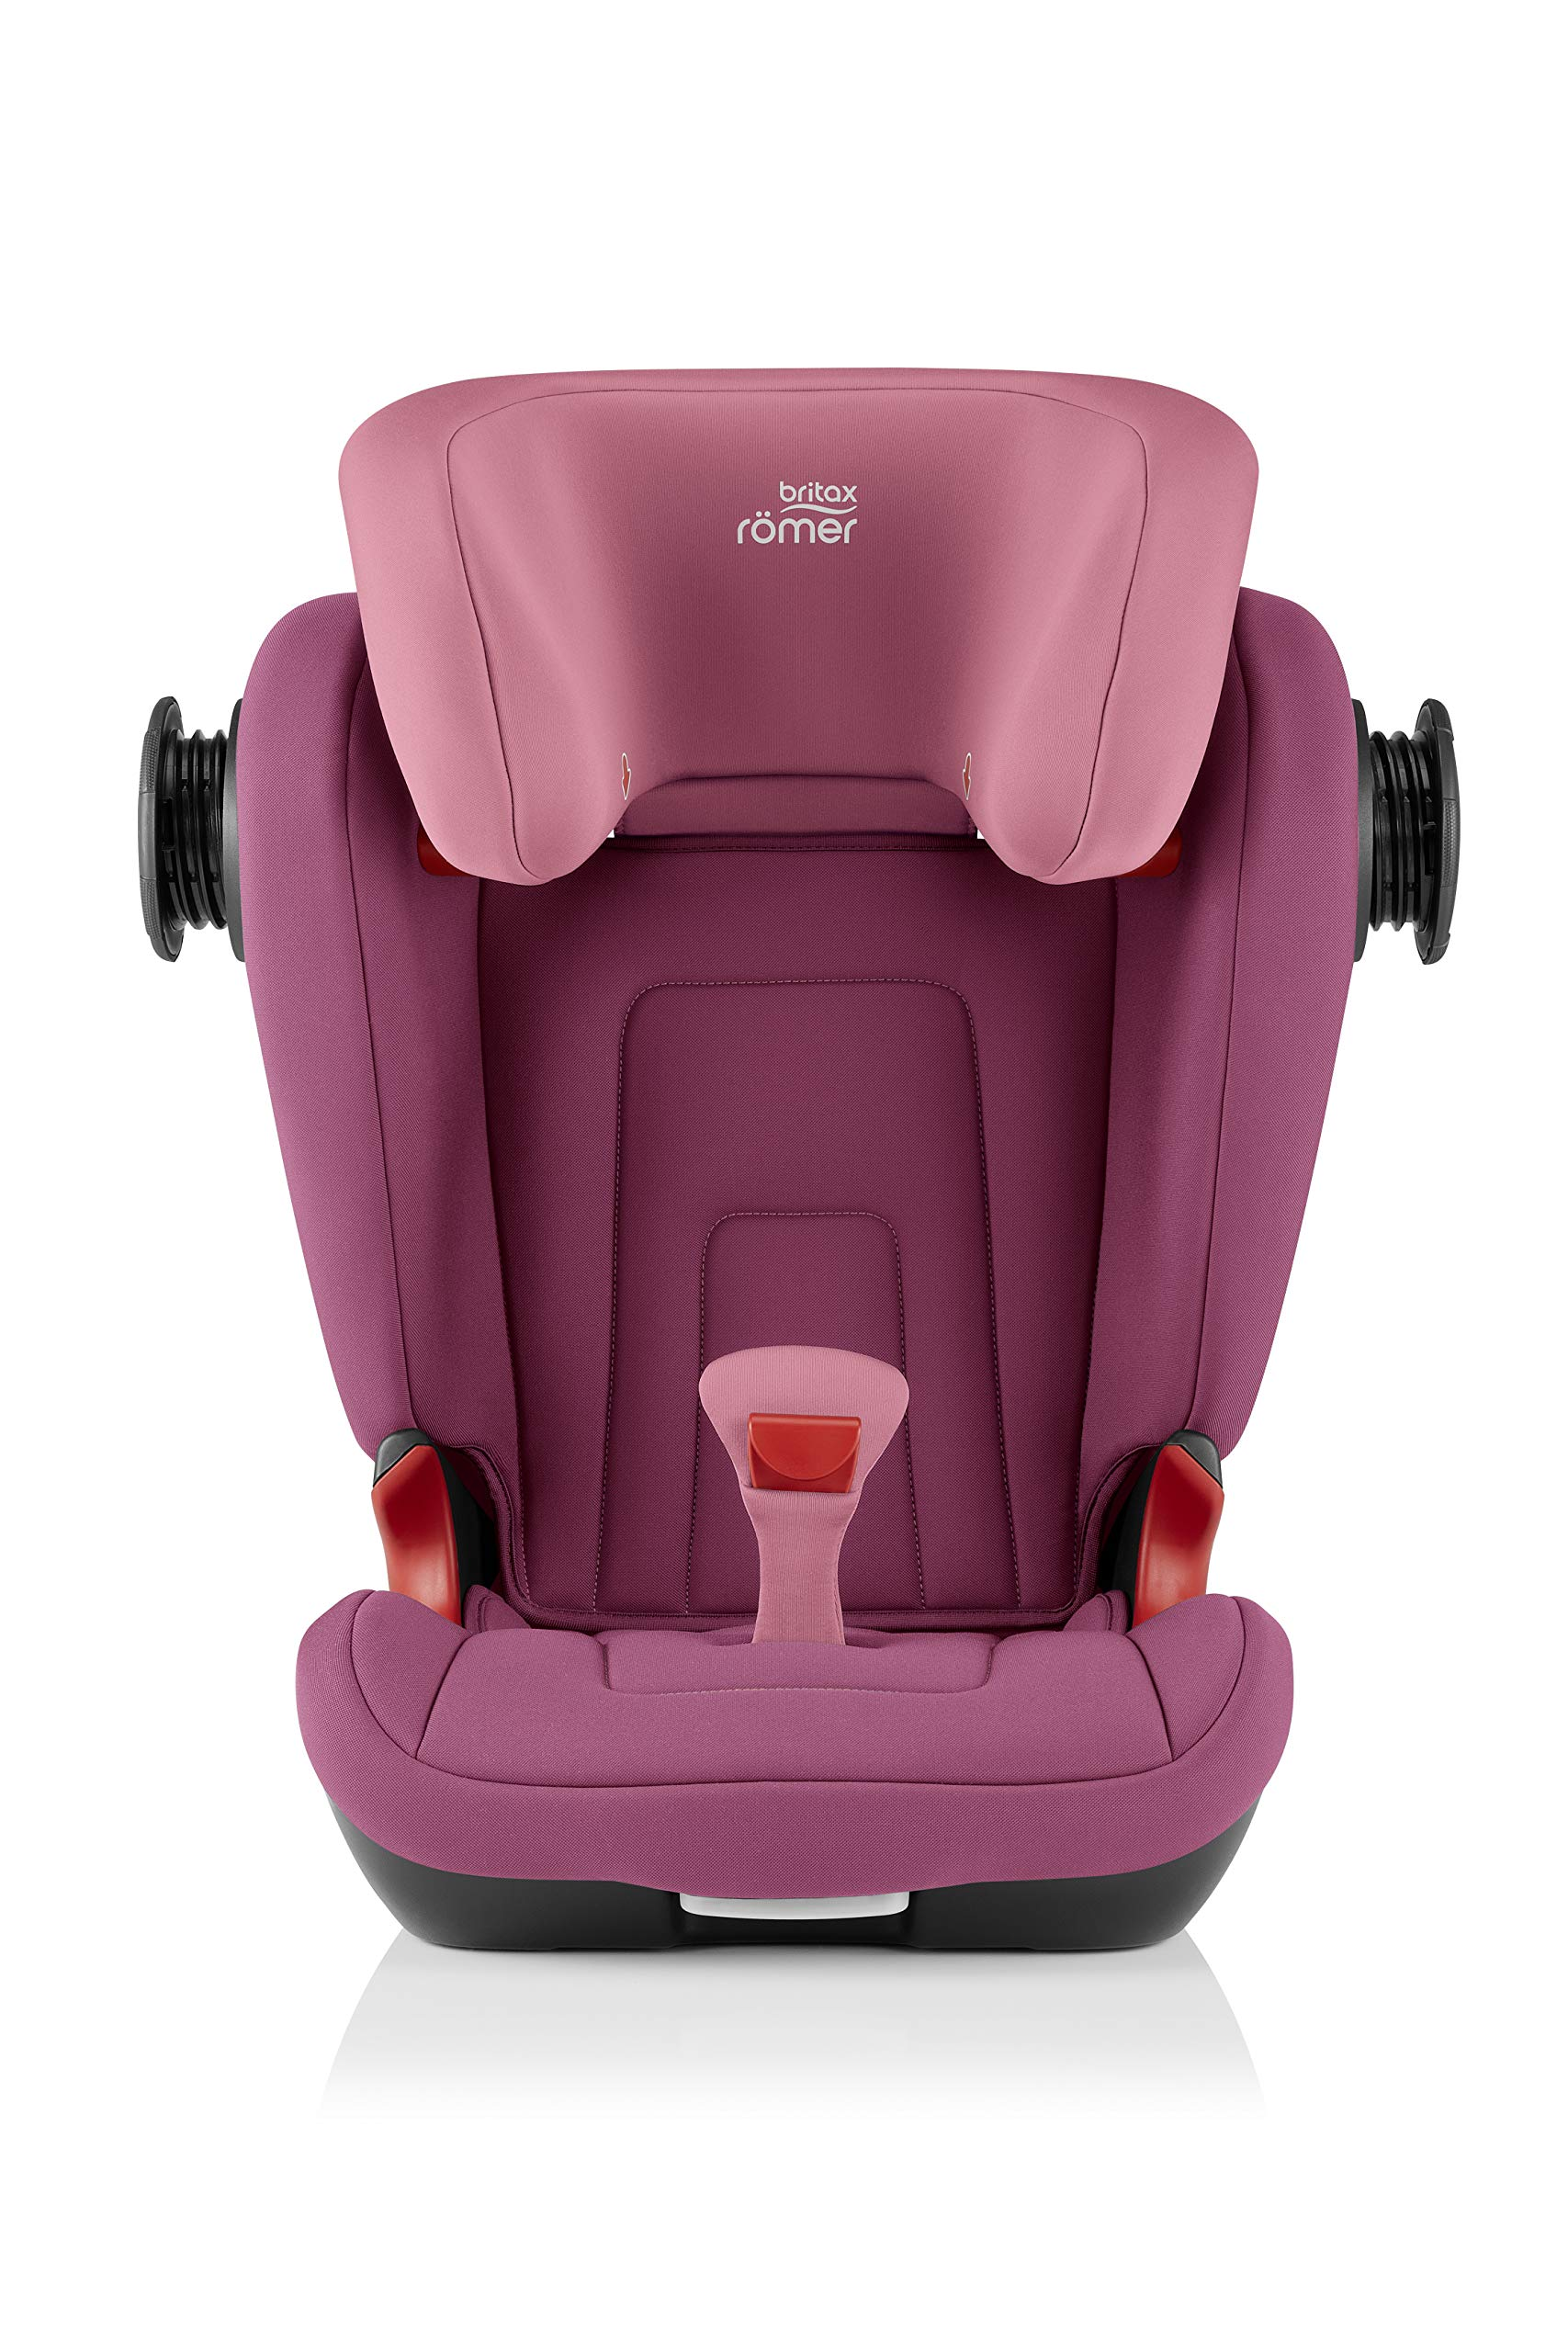 Britax Römer KIDFIX² S Group 2-3 (15-36kg) Car Seat - Wine Rose  Advanced side impact protection - sict offers superior protection to your child in the event of a side collision. reducing impact forces by minimising the distance between the car and the car seat. Secure guard - helps to protect your child's delicate abdominal area by adding an extra - a 4th - contact point to the 3-point seat belt. High back booster - protects your child in 3 ways: provides head to hip protection; belt guides provide correct positioning of the seat belt and the padded headrest provides safety and comfort. 6